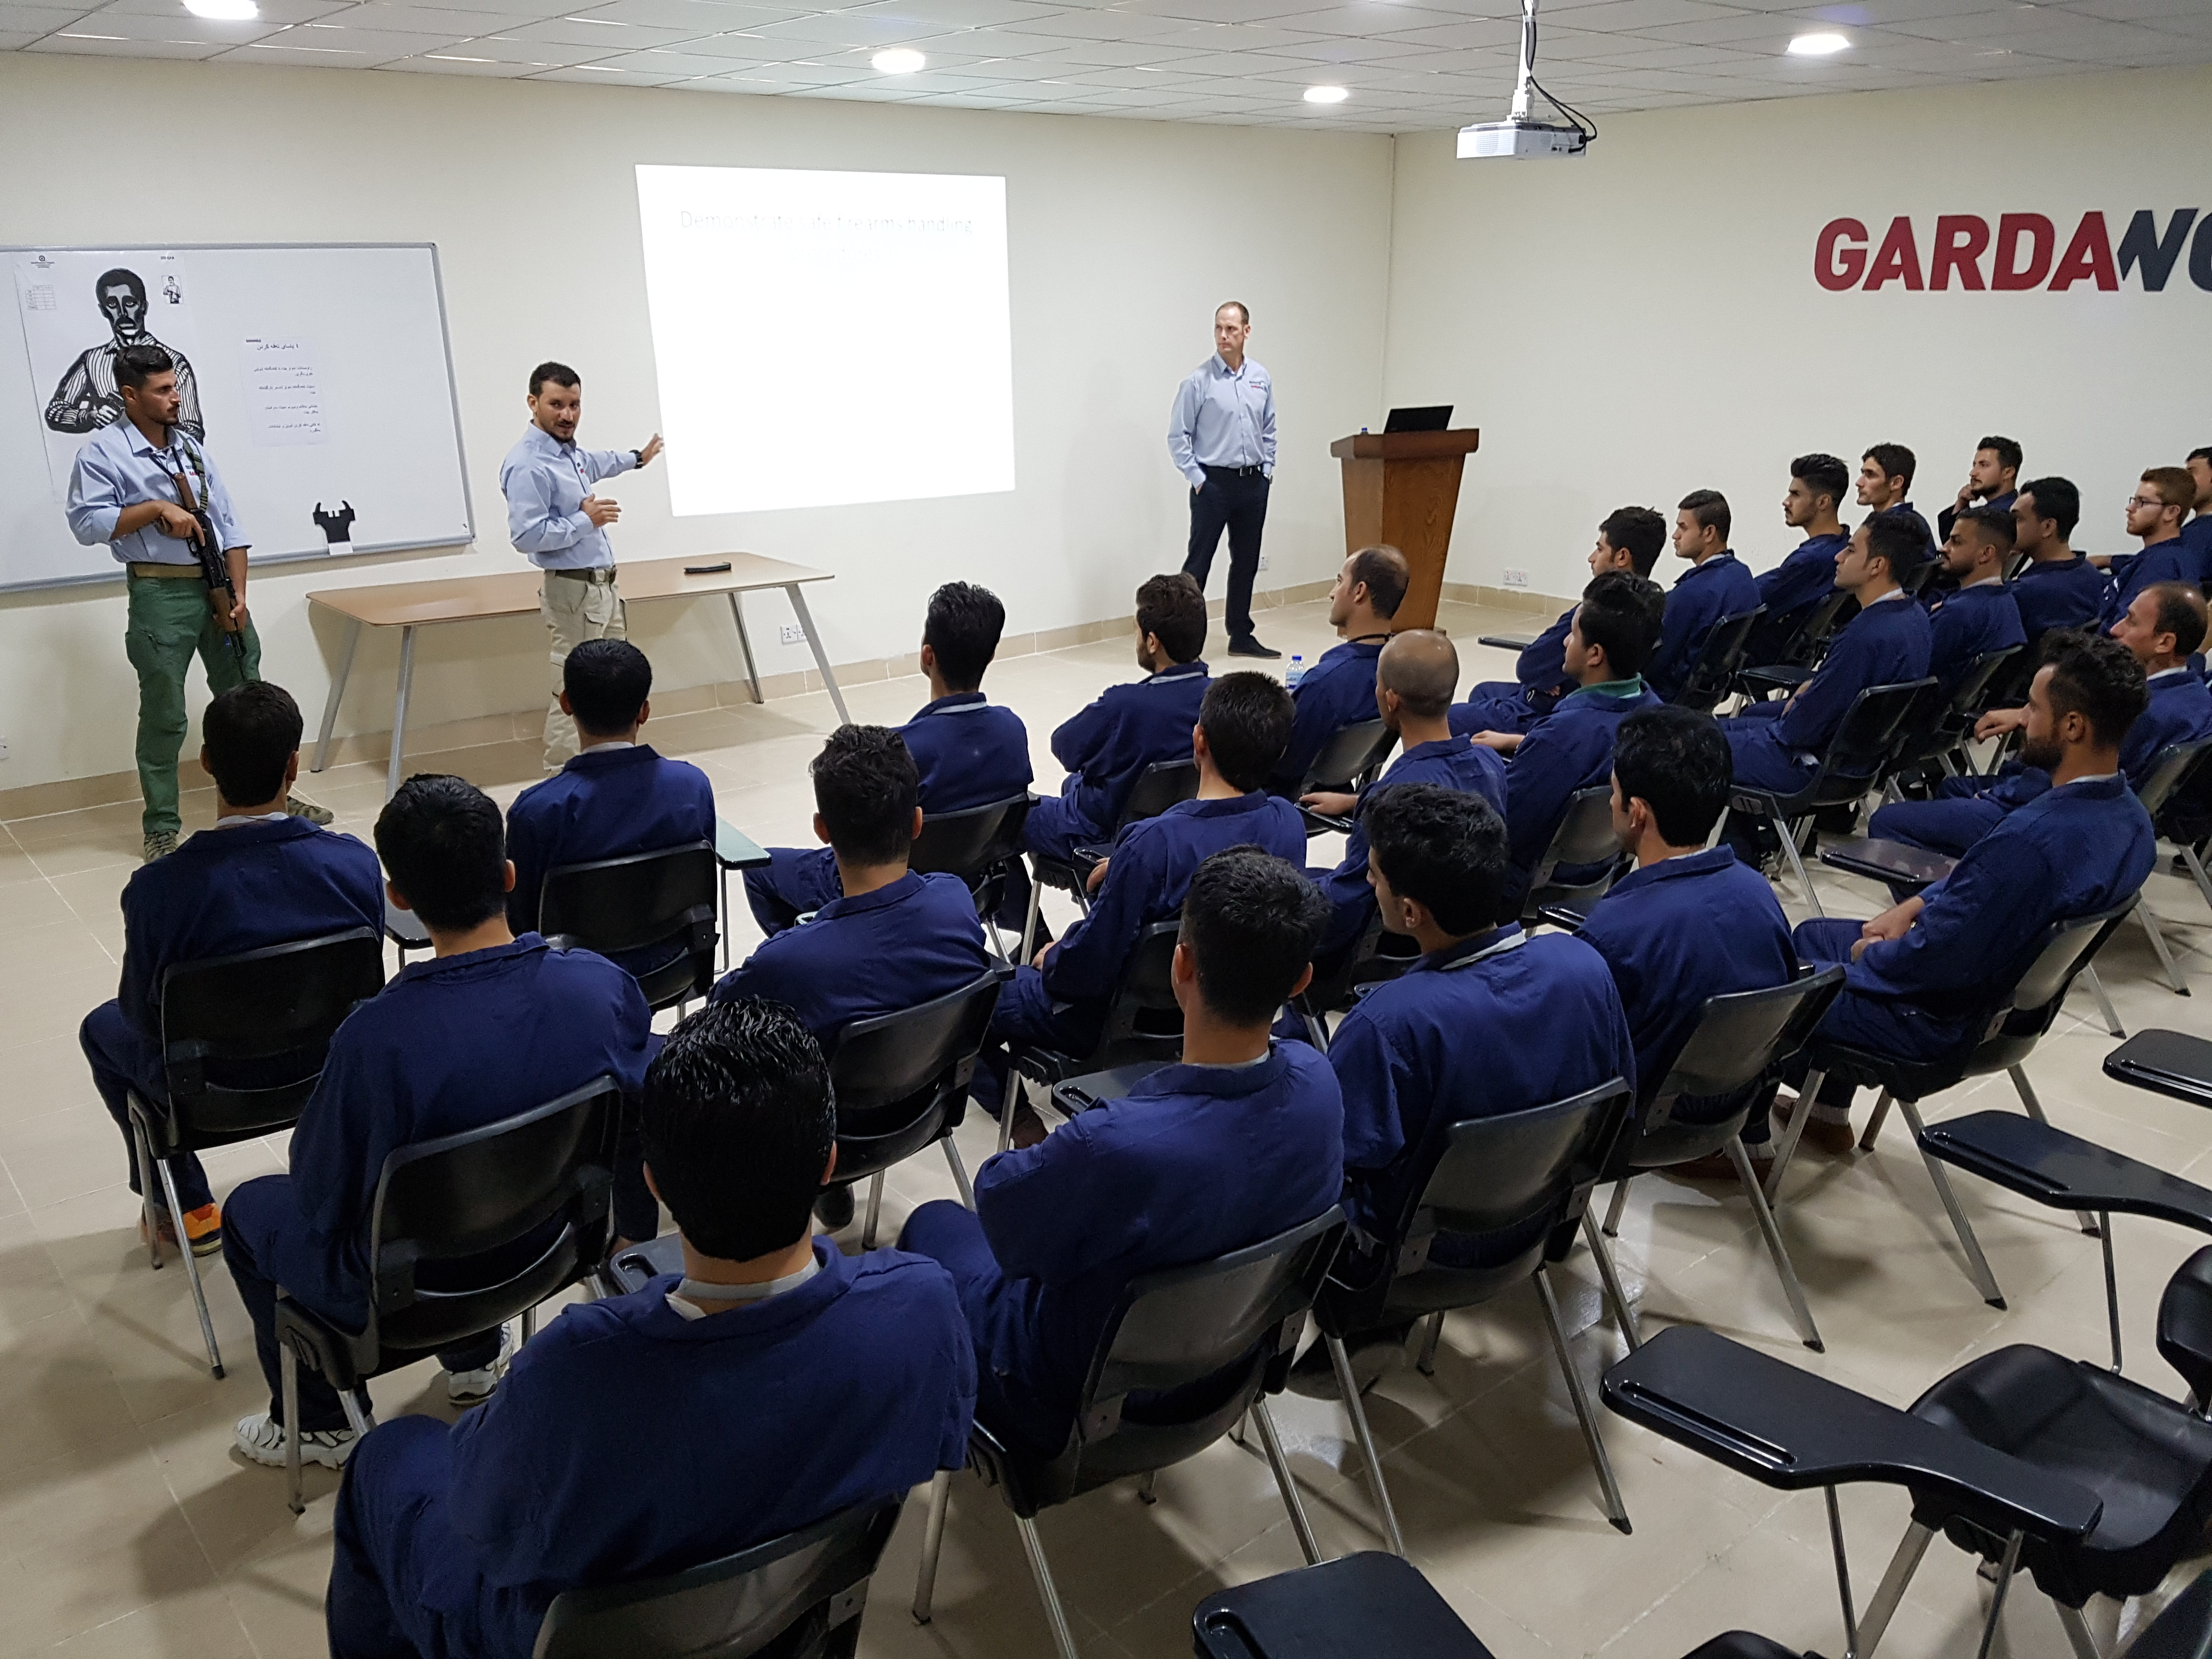 GardaWorld's training solutions and standard security training courses in session